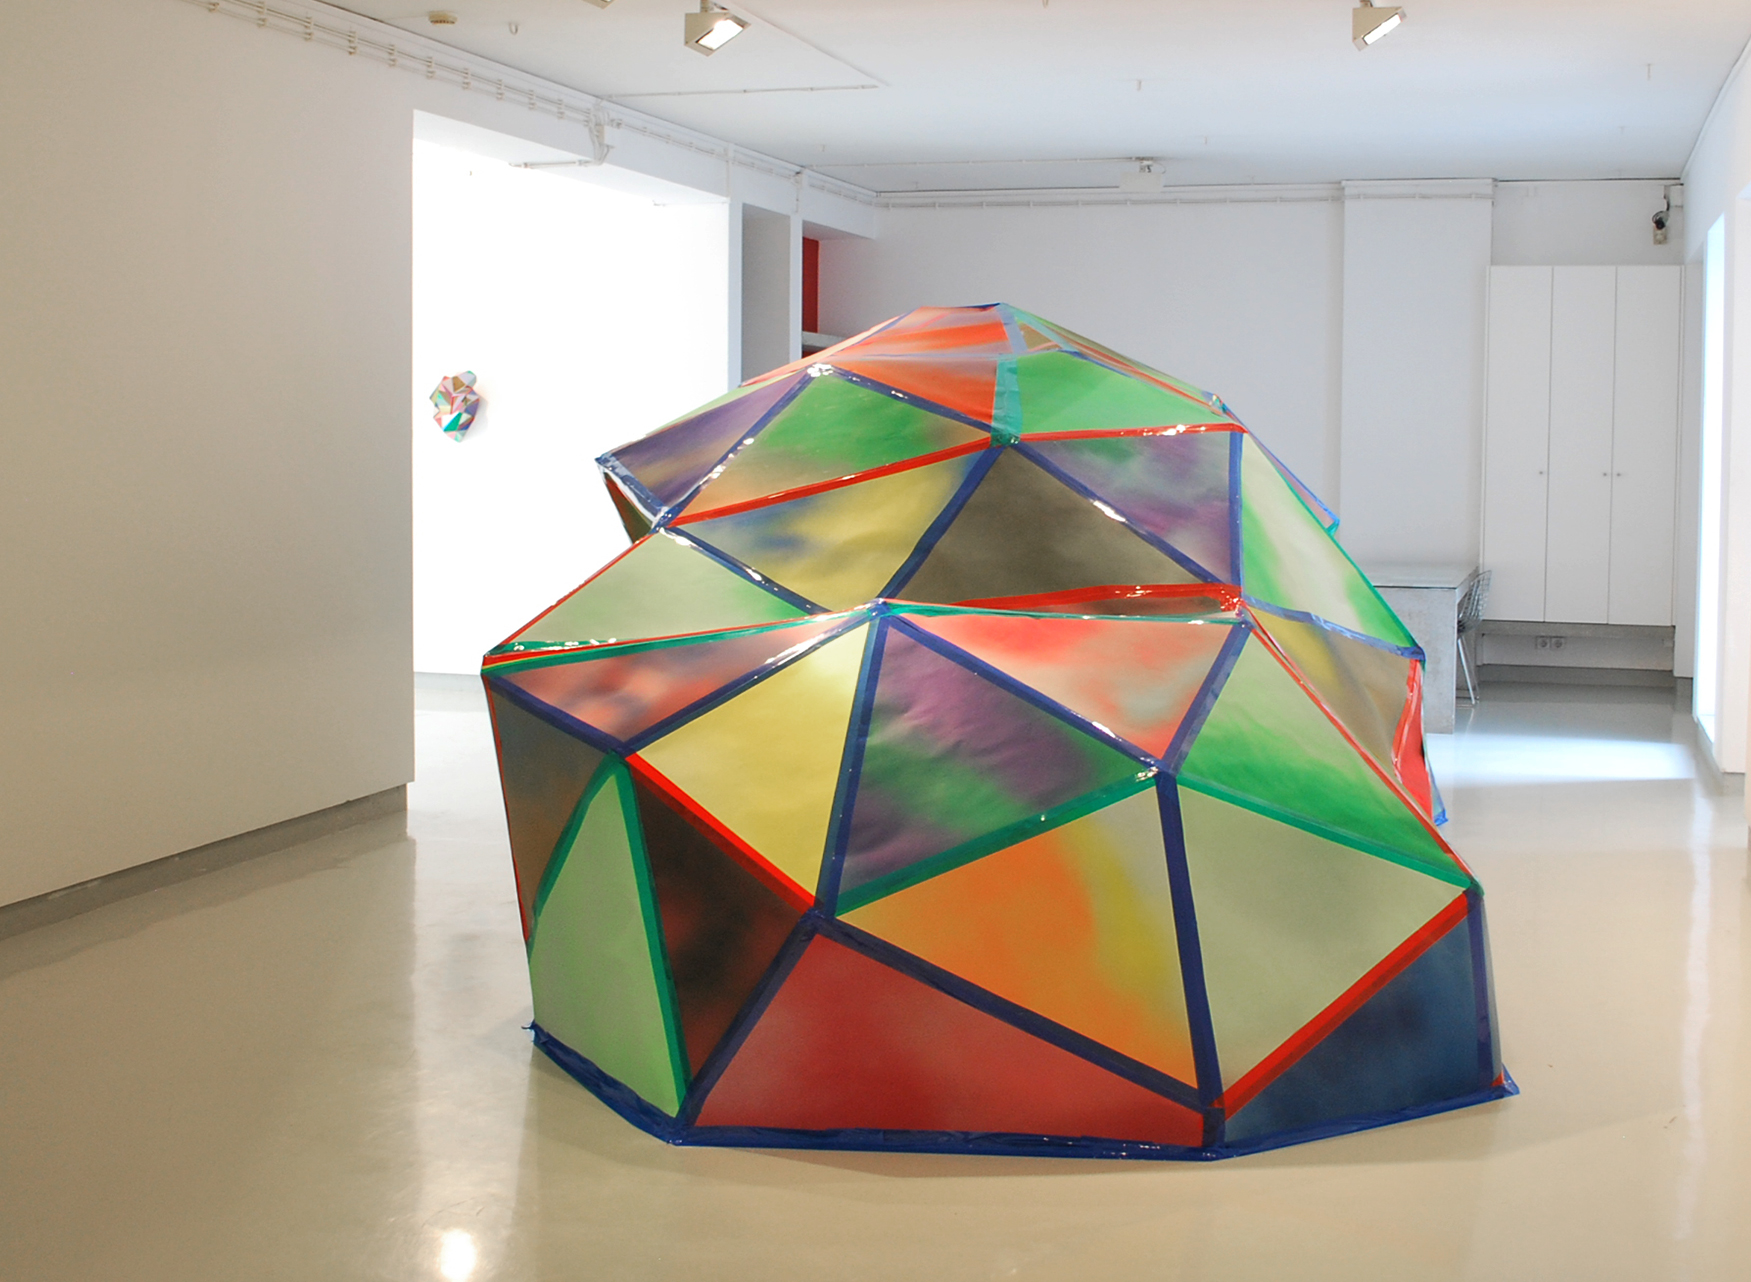 Portable Sculpture , 2012, 2005 Peugeot Partner Van, wood, paper, house spray paint and colored tape, 214.6 x 214.6 x 92.7 inches, Porto, PT